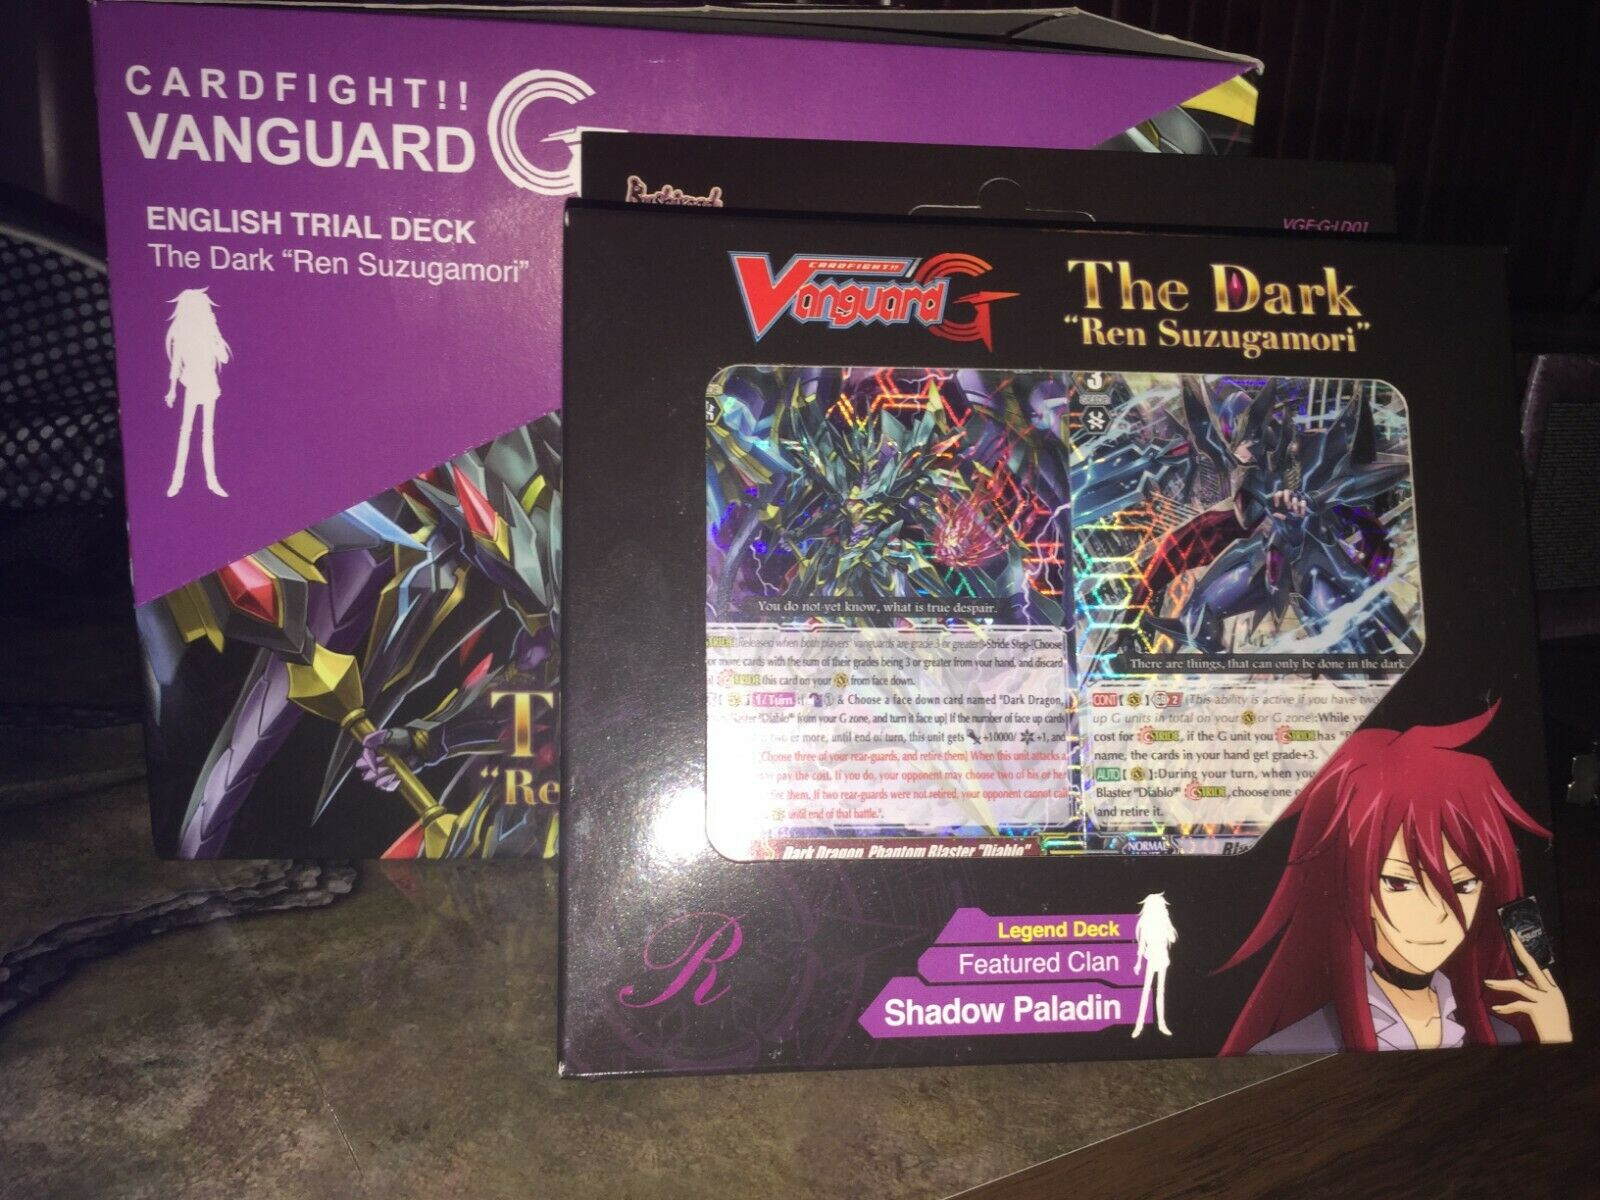 Cardfight Vanguard: The Dark